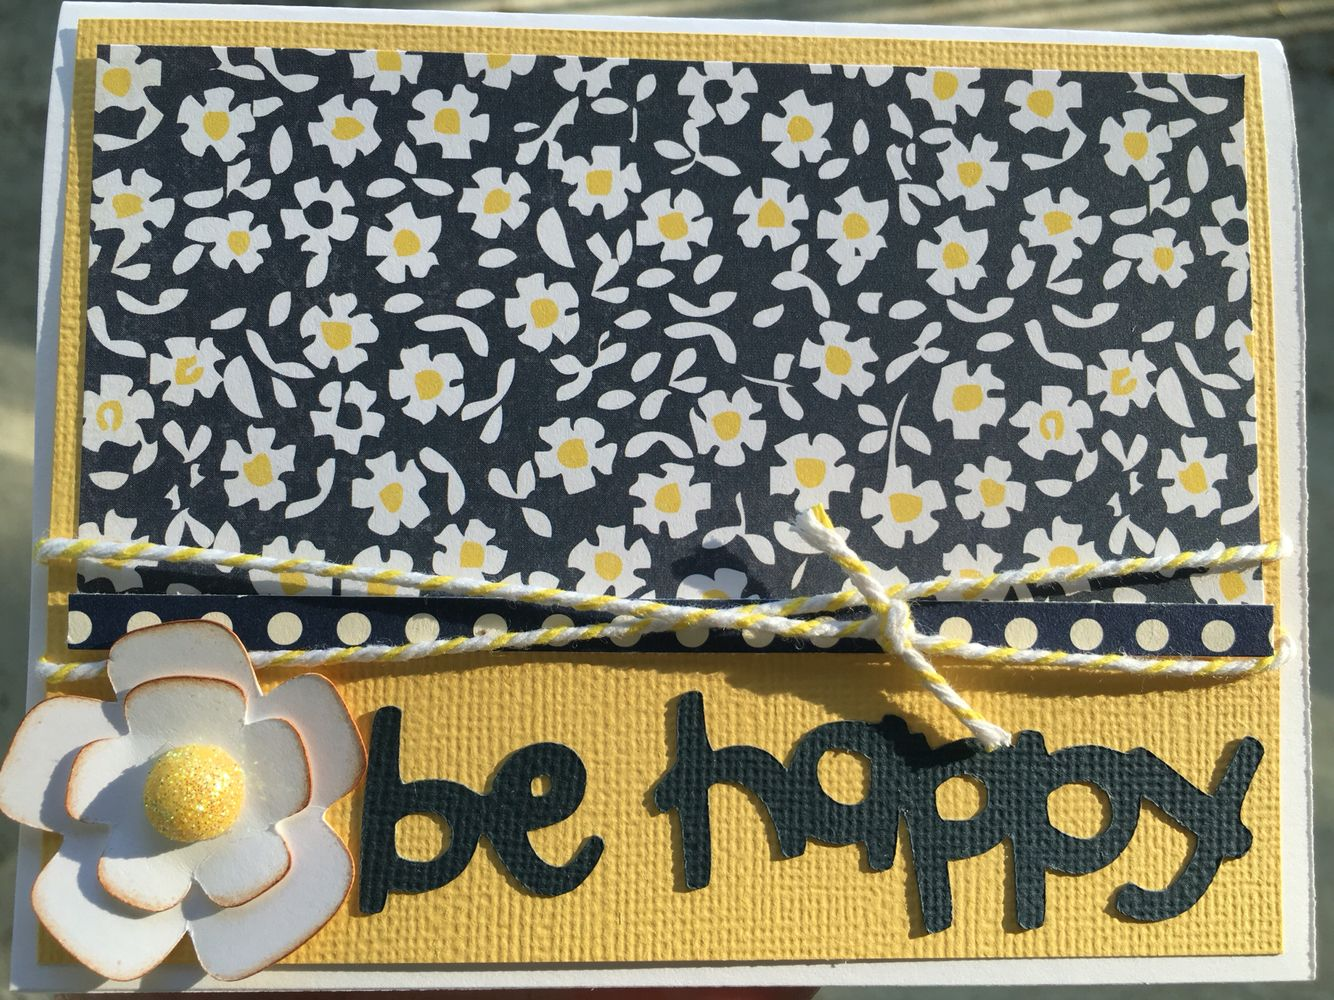 Be happy! Next time could add a bumblebee and substitute with BEE happy!